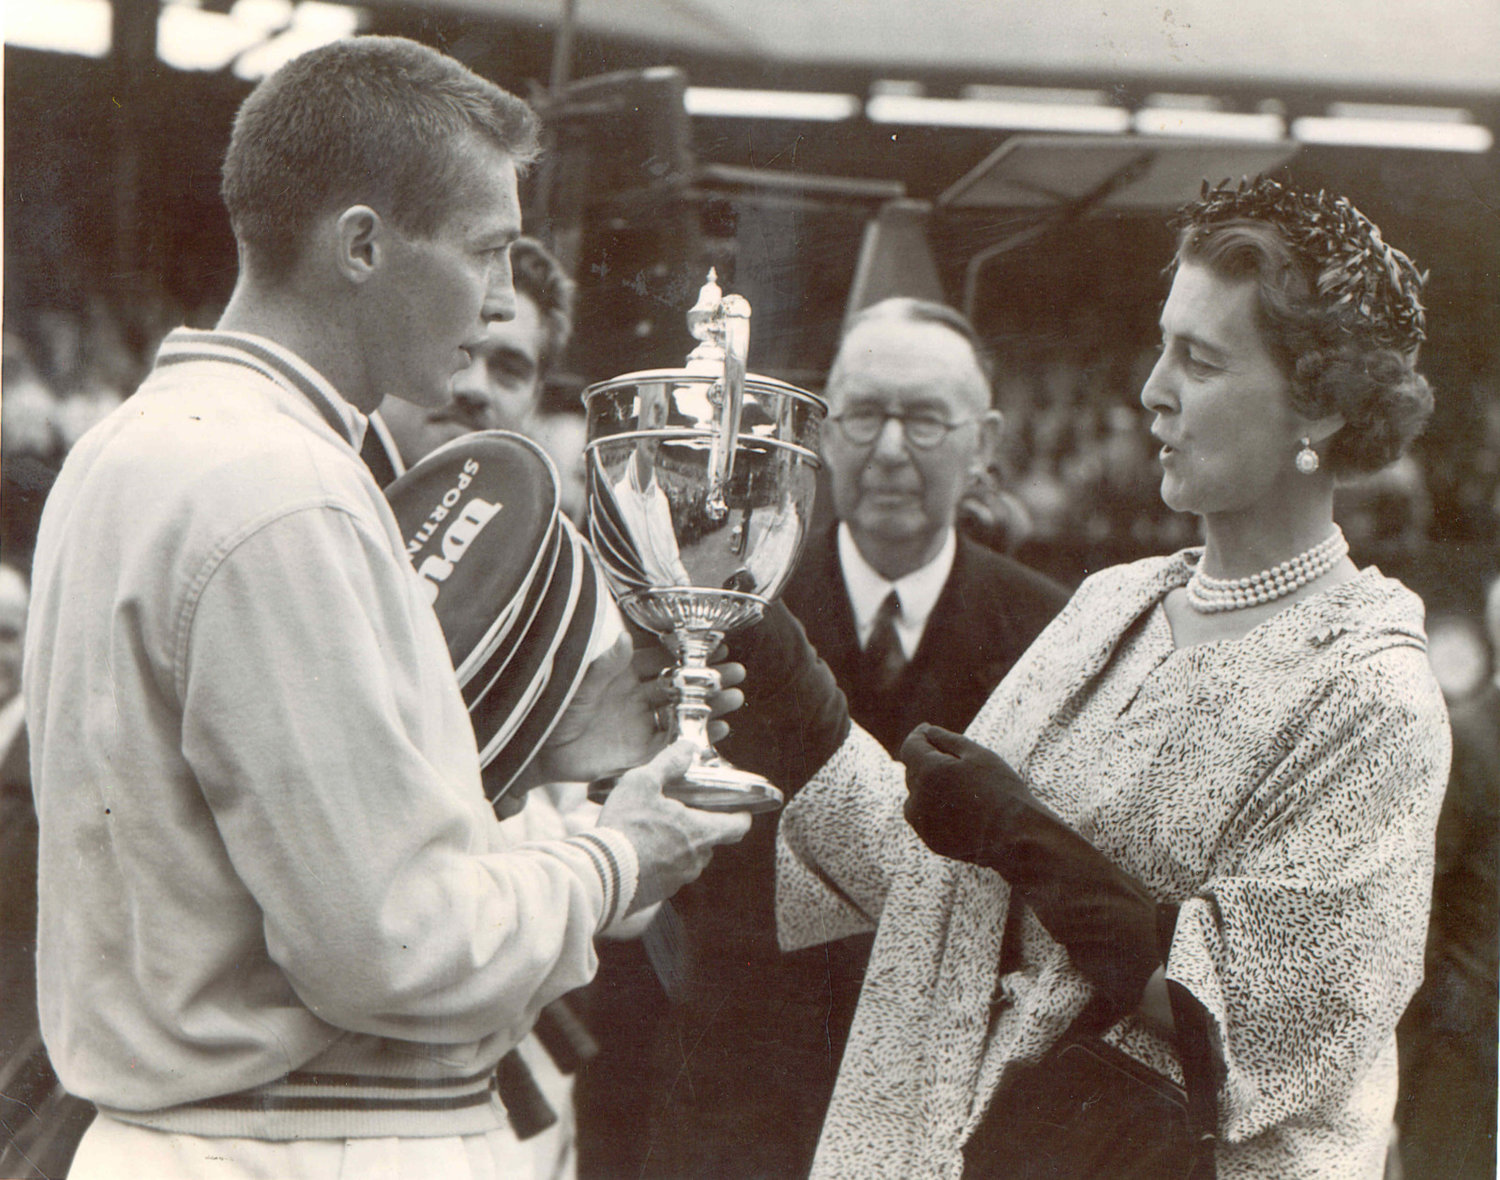 Tony Trabert is handed the Wimbledon trophy in 1955, the year he won three of four majors and was ranked No.1 in the world.